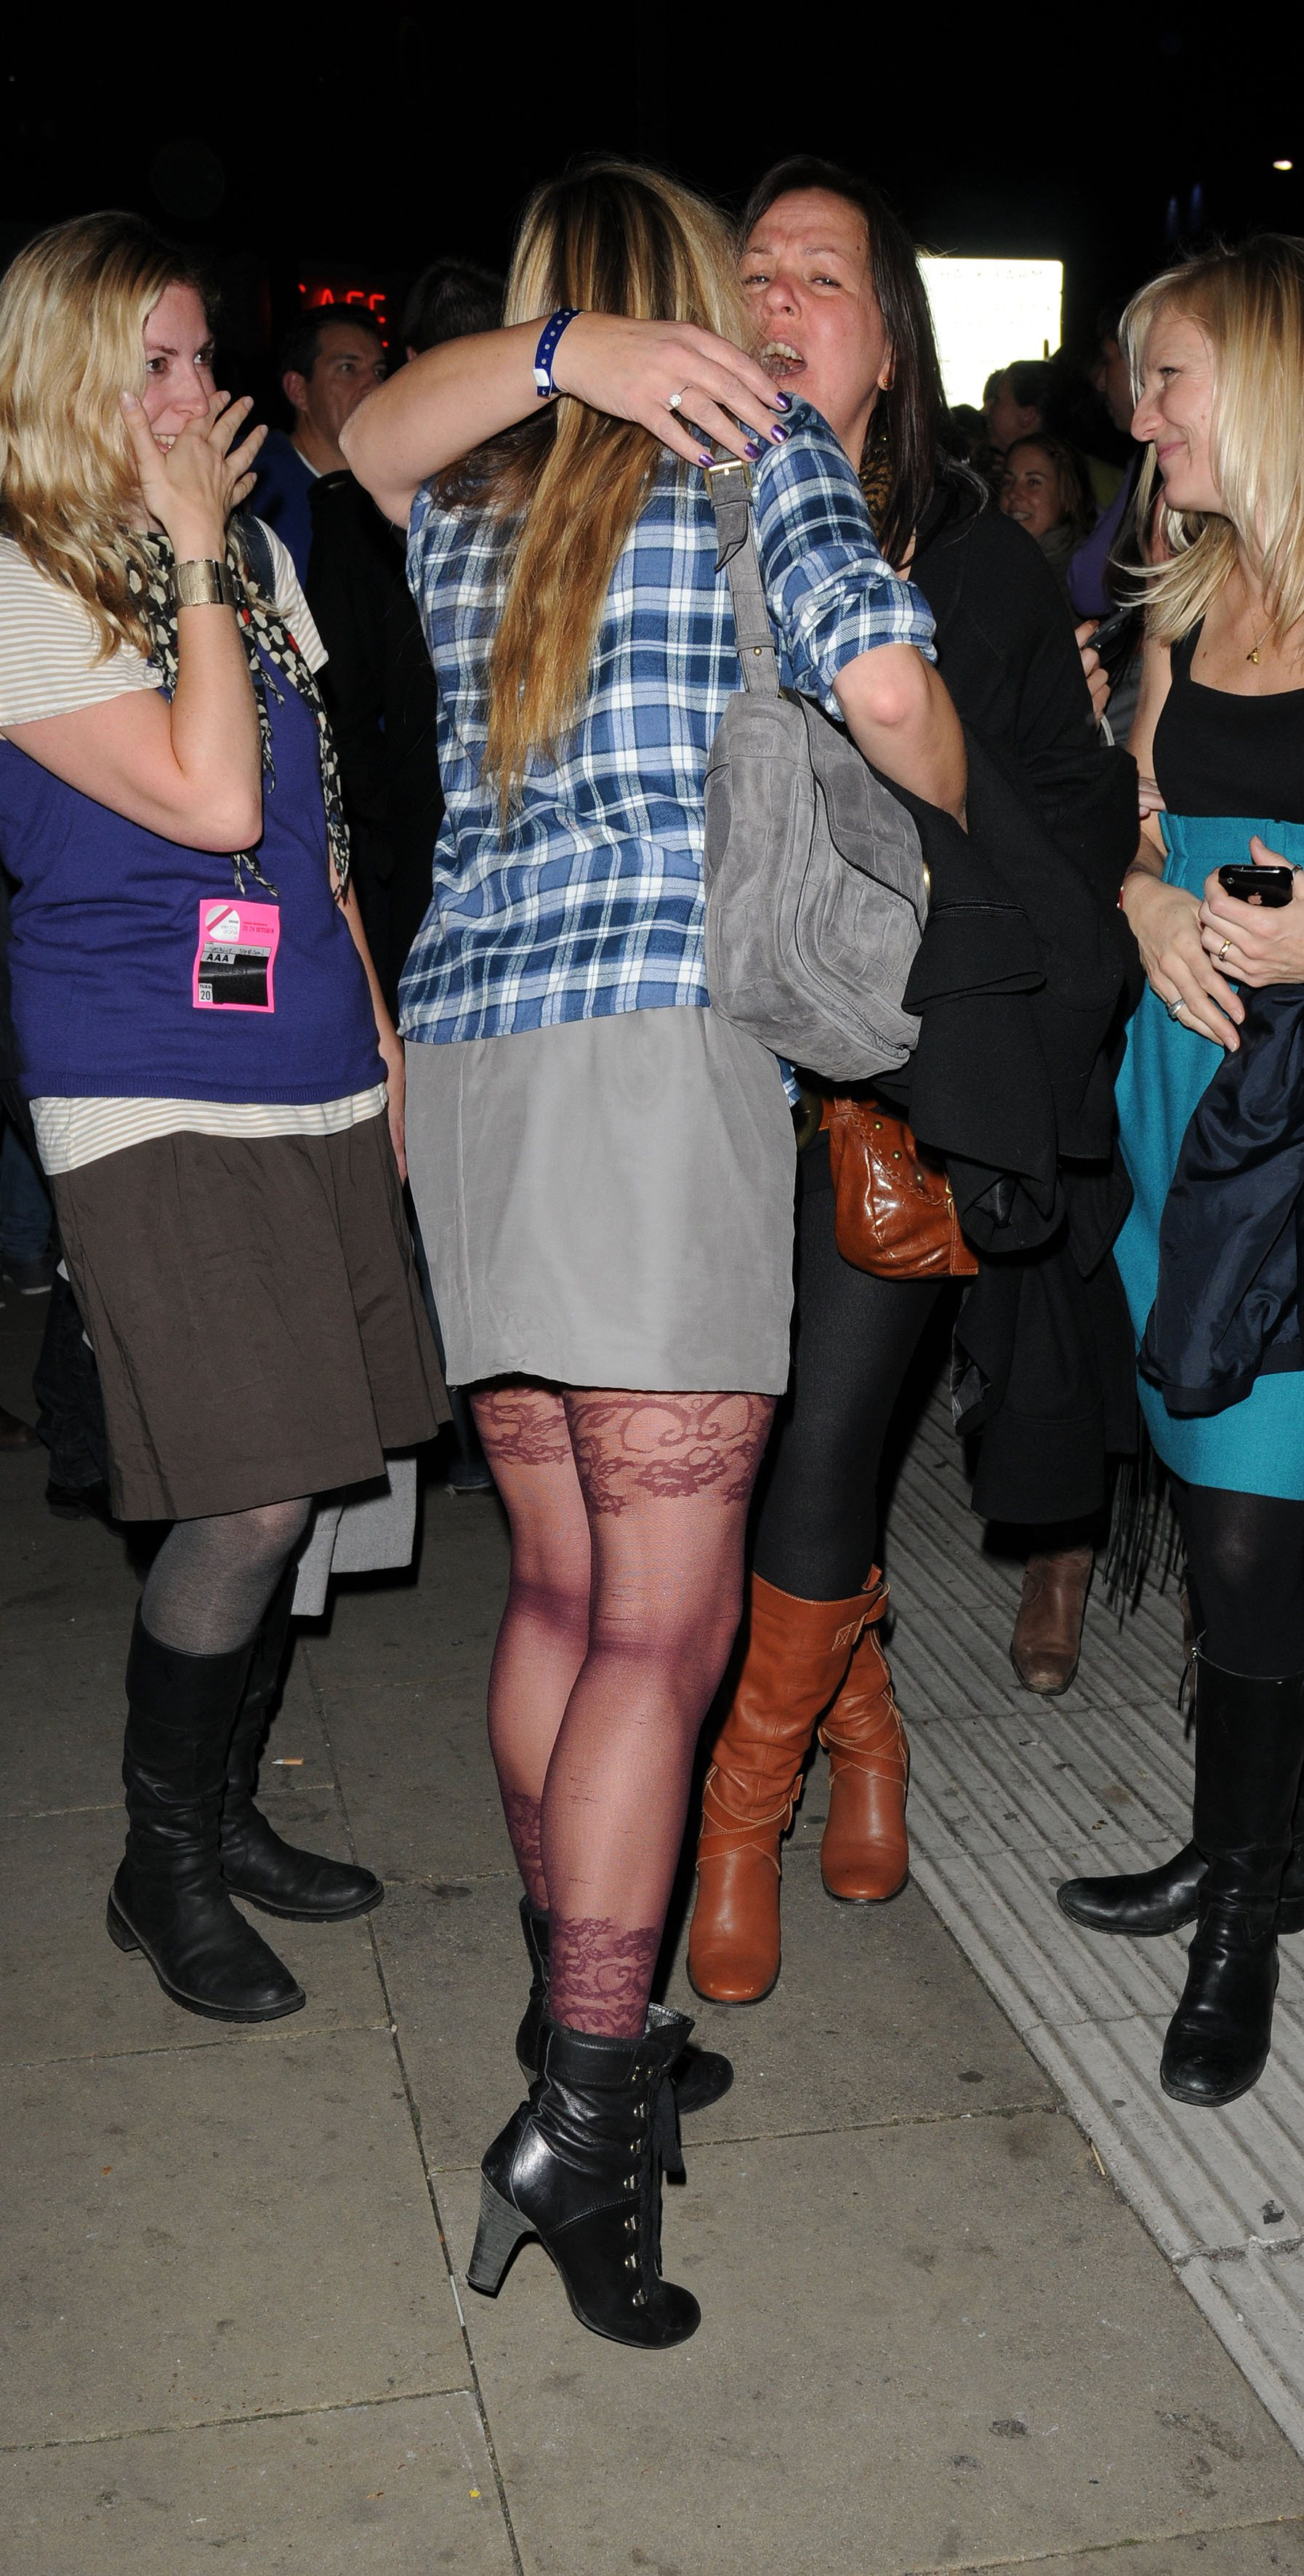 06357_Fearne_Cotton_Arrives_for_Robbie_Williams_gig_as_part_of_BBC_Electric_Proms_Festival_05_122_592lo.jpg